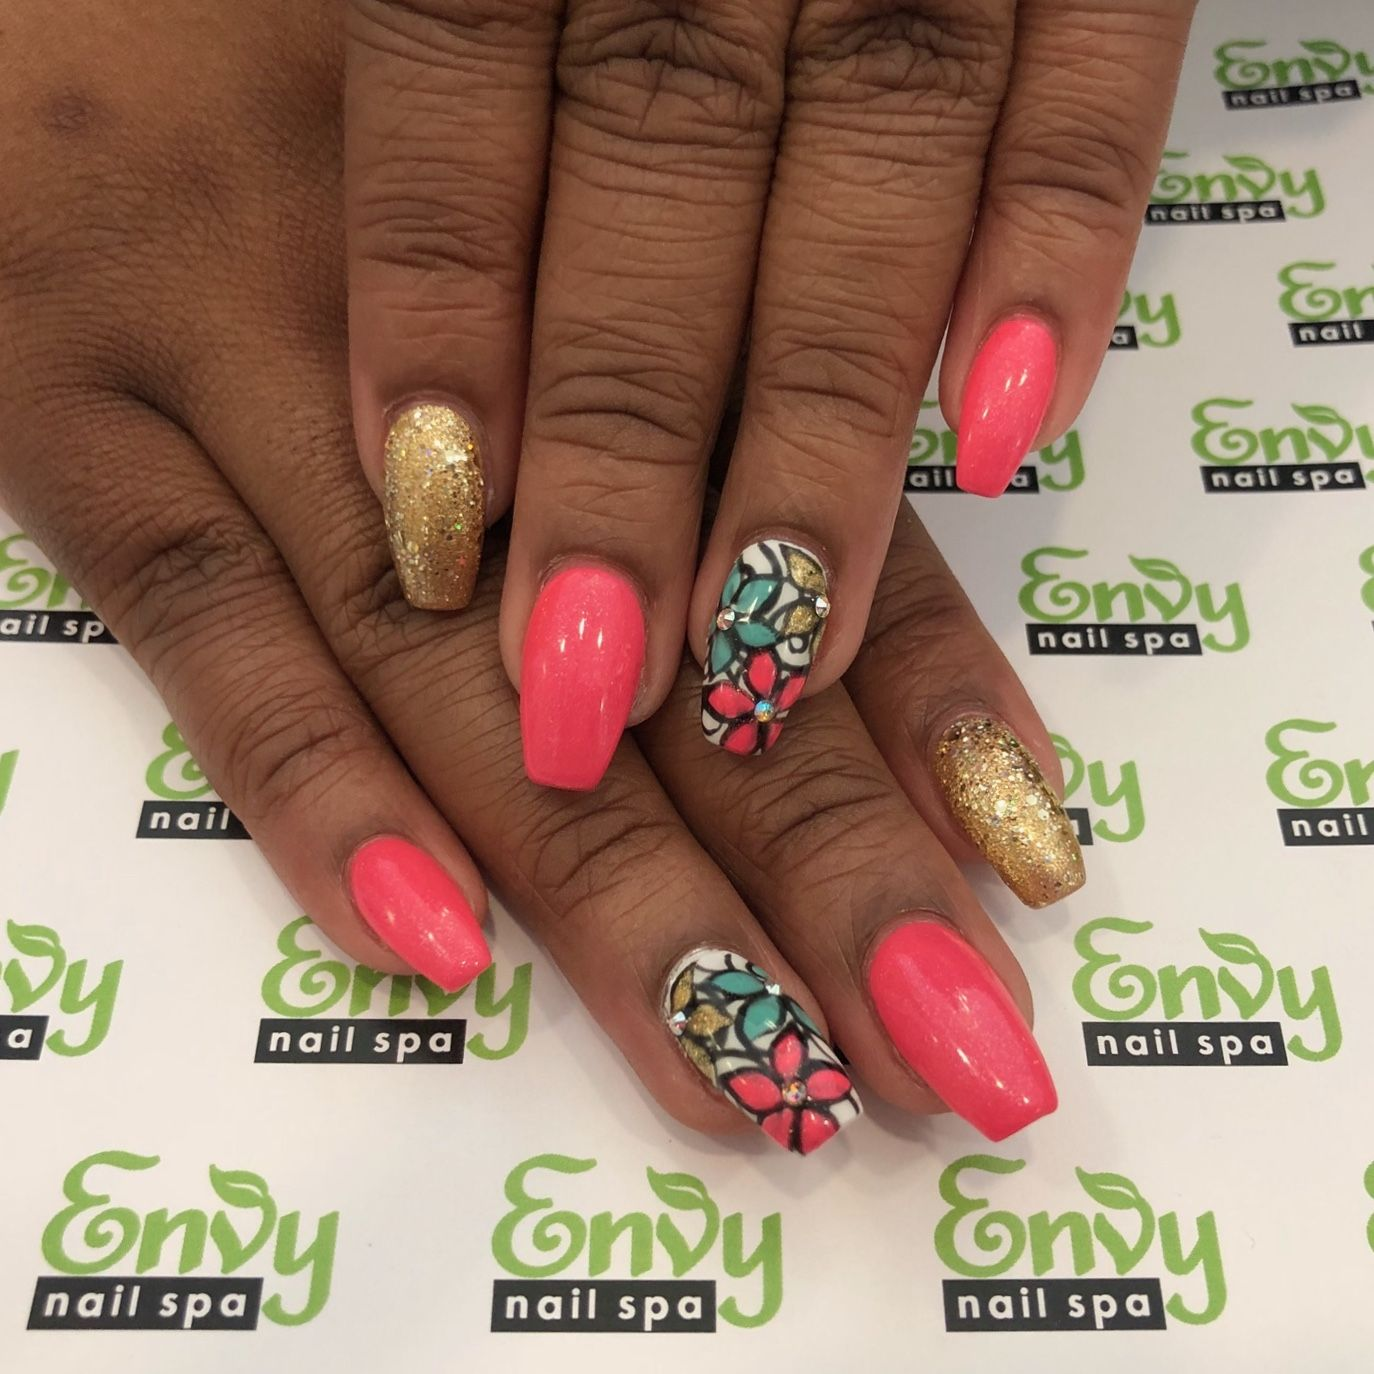 Flower, Gold Glitter, Pink, Blue Nails - Envy Nail Spa | Flowers ...